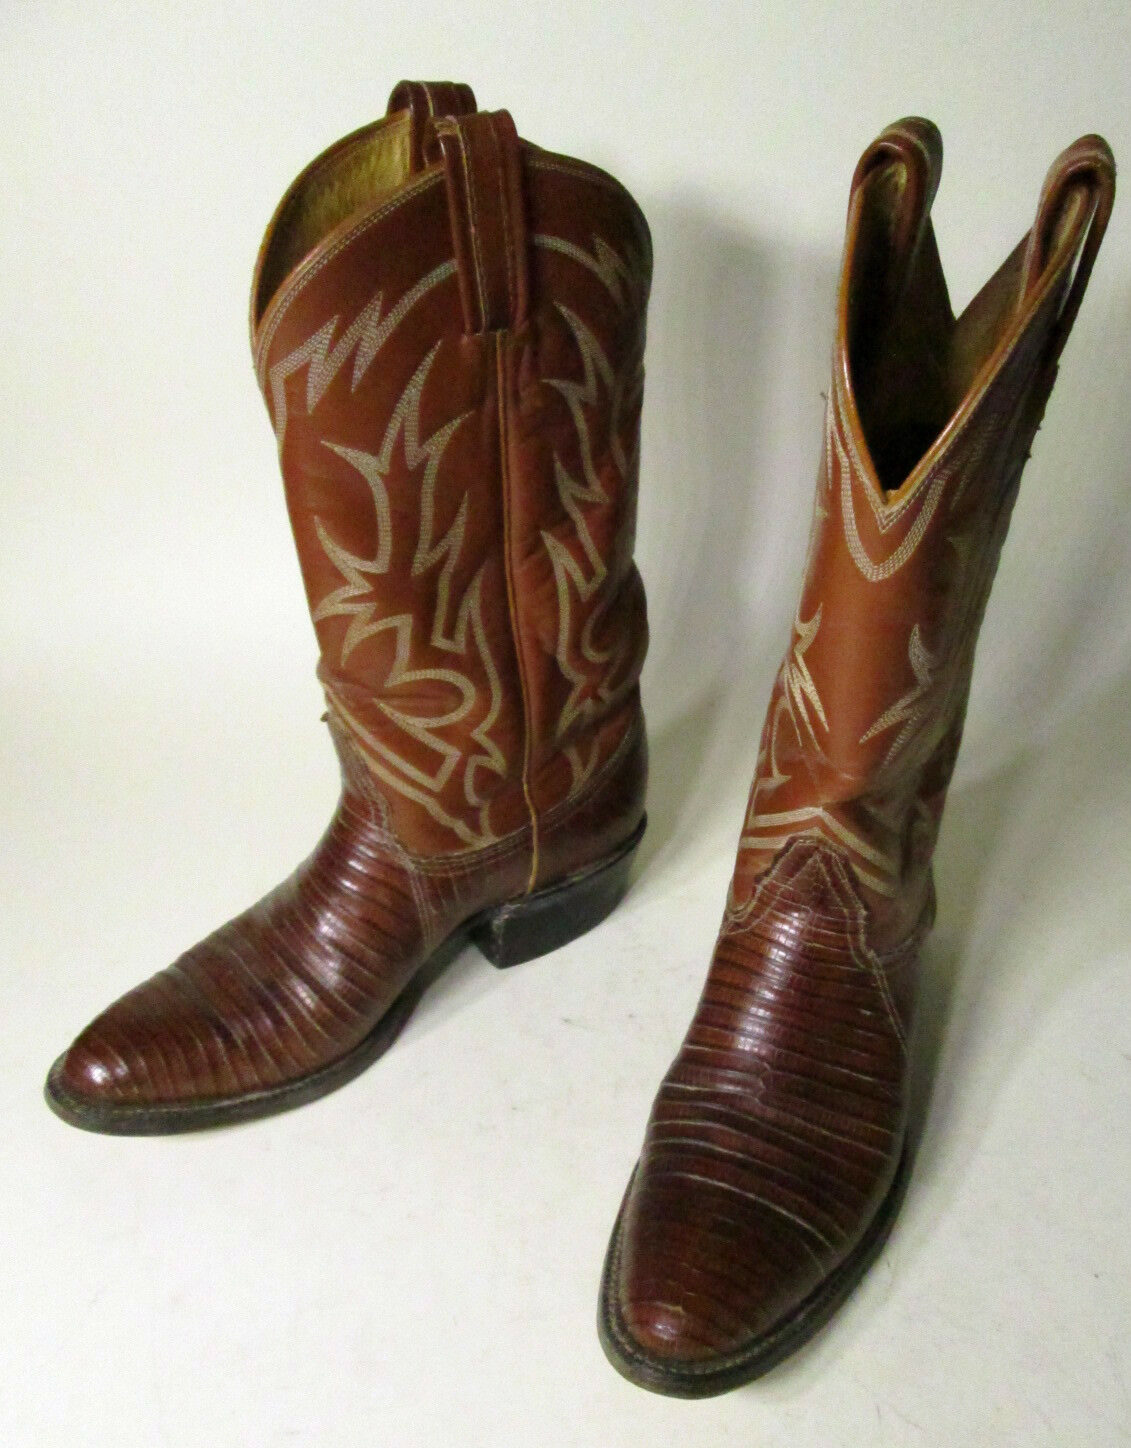 vtg EUC Tony Lama Brown black label Lizard Iguana Cowboy Boots Men's 8 B?